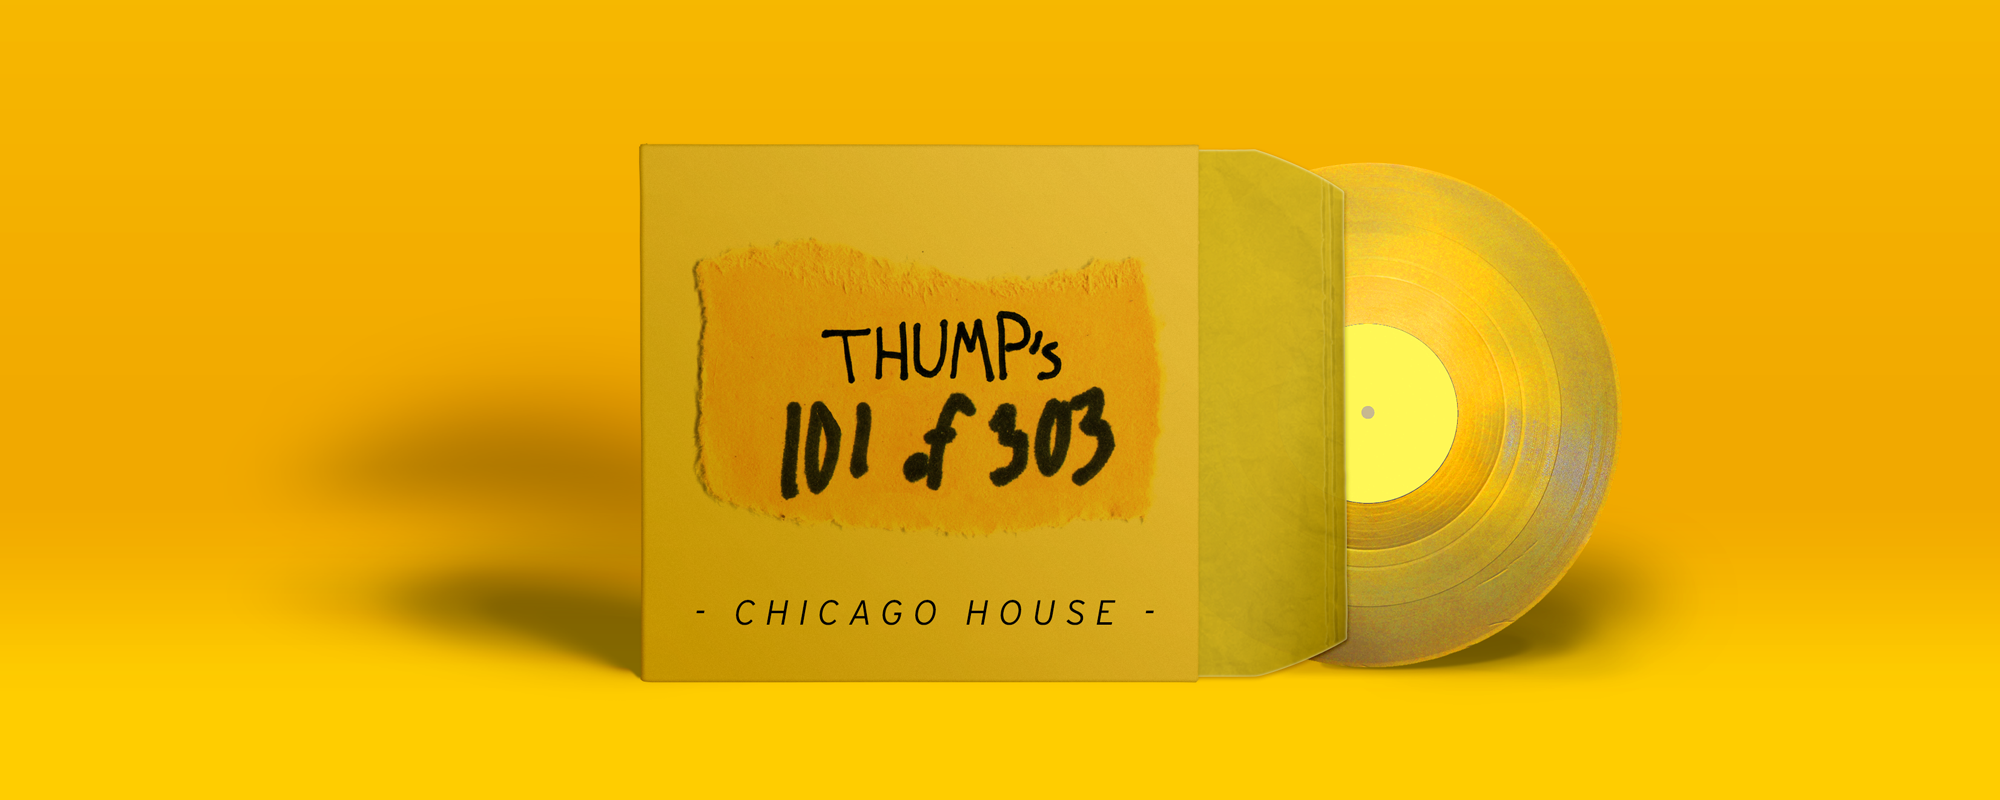 Thump 39 s 101 of the 303 chicago house thump for Chicago house music classics